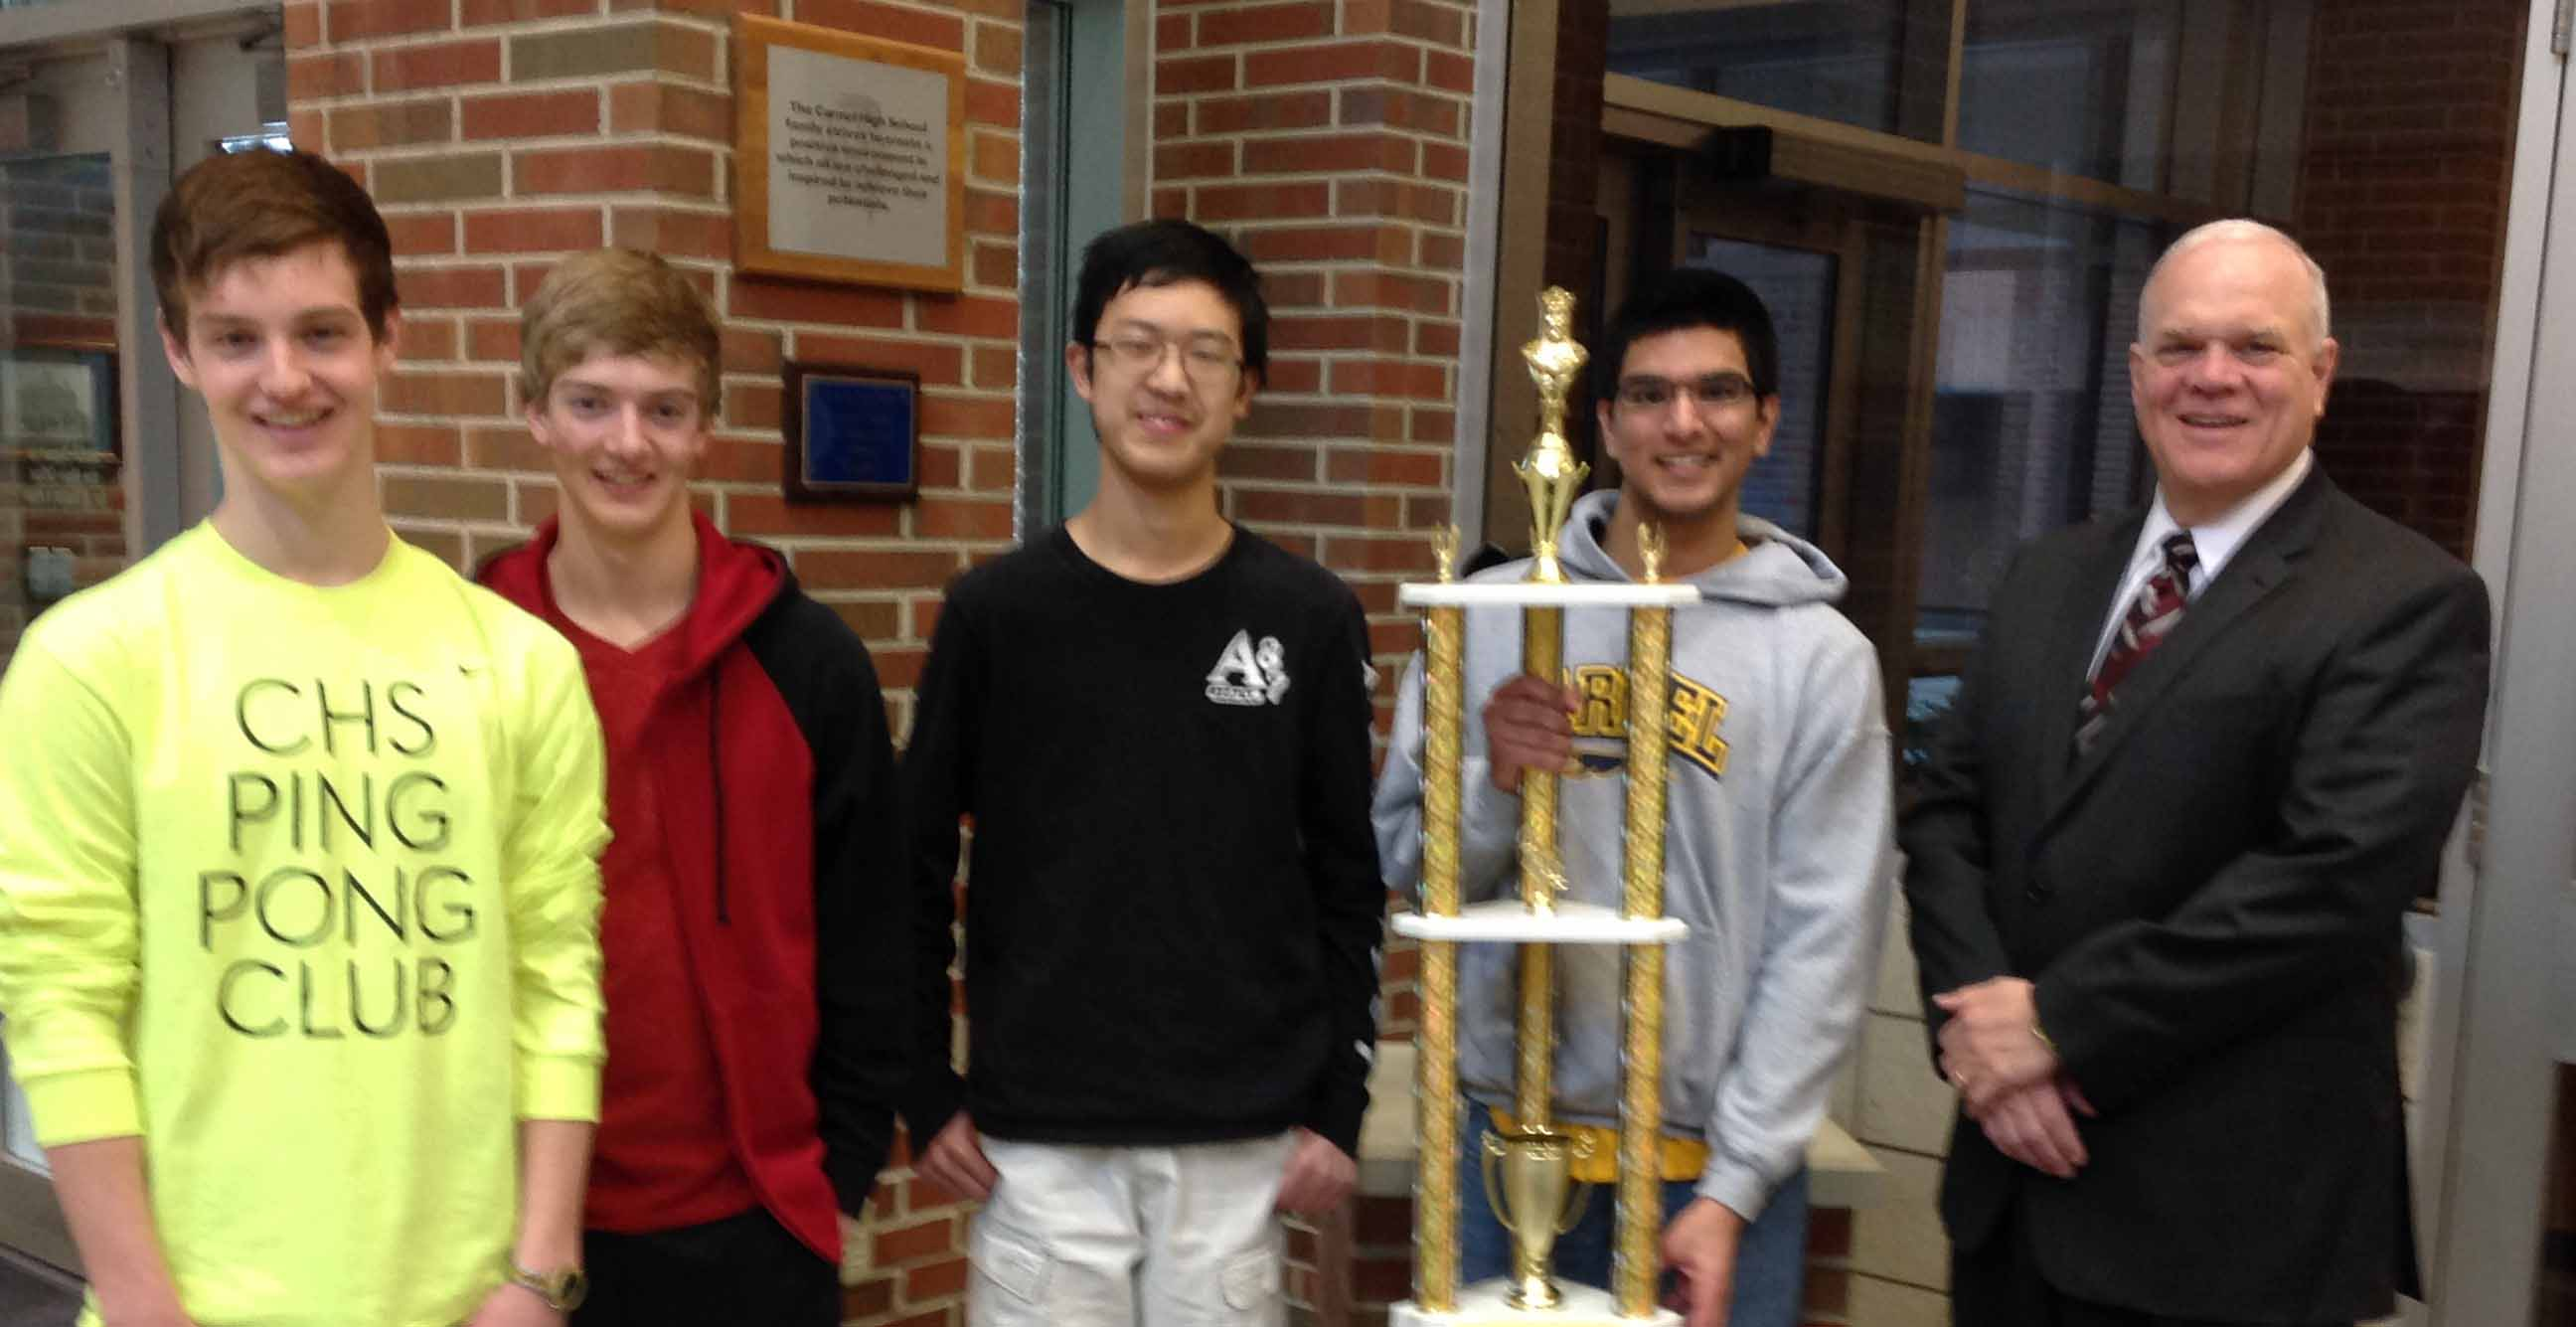 The Carmel High School chess team, from left, sophomore Joe Philleo, freshman Sam Philleo, Junior Kevin Mi and senior Sameer Manchanda with advisor Mr. Williams, won the Scholastic Chess of Indiana High School Team State Championship for the third year in a row. (Submitted photo)